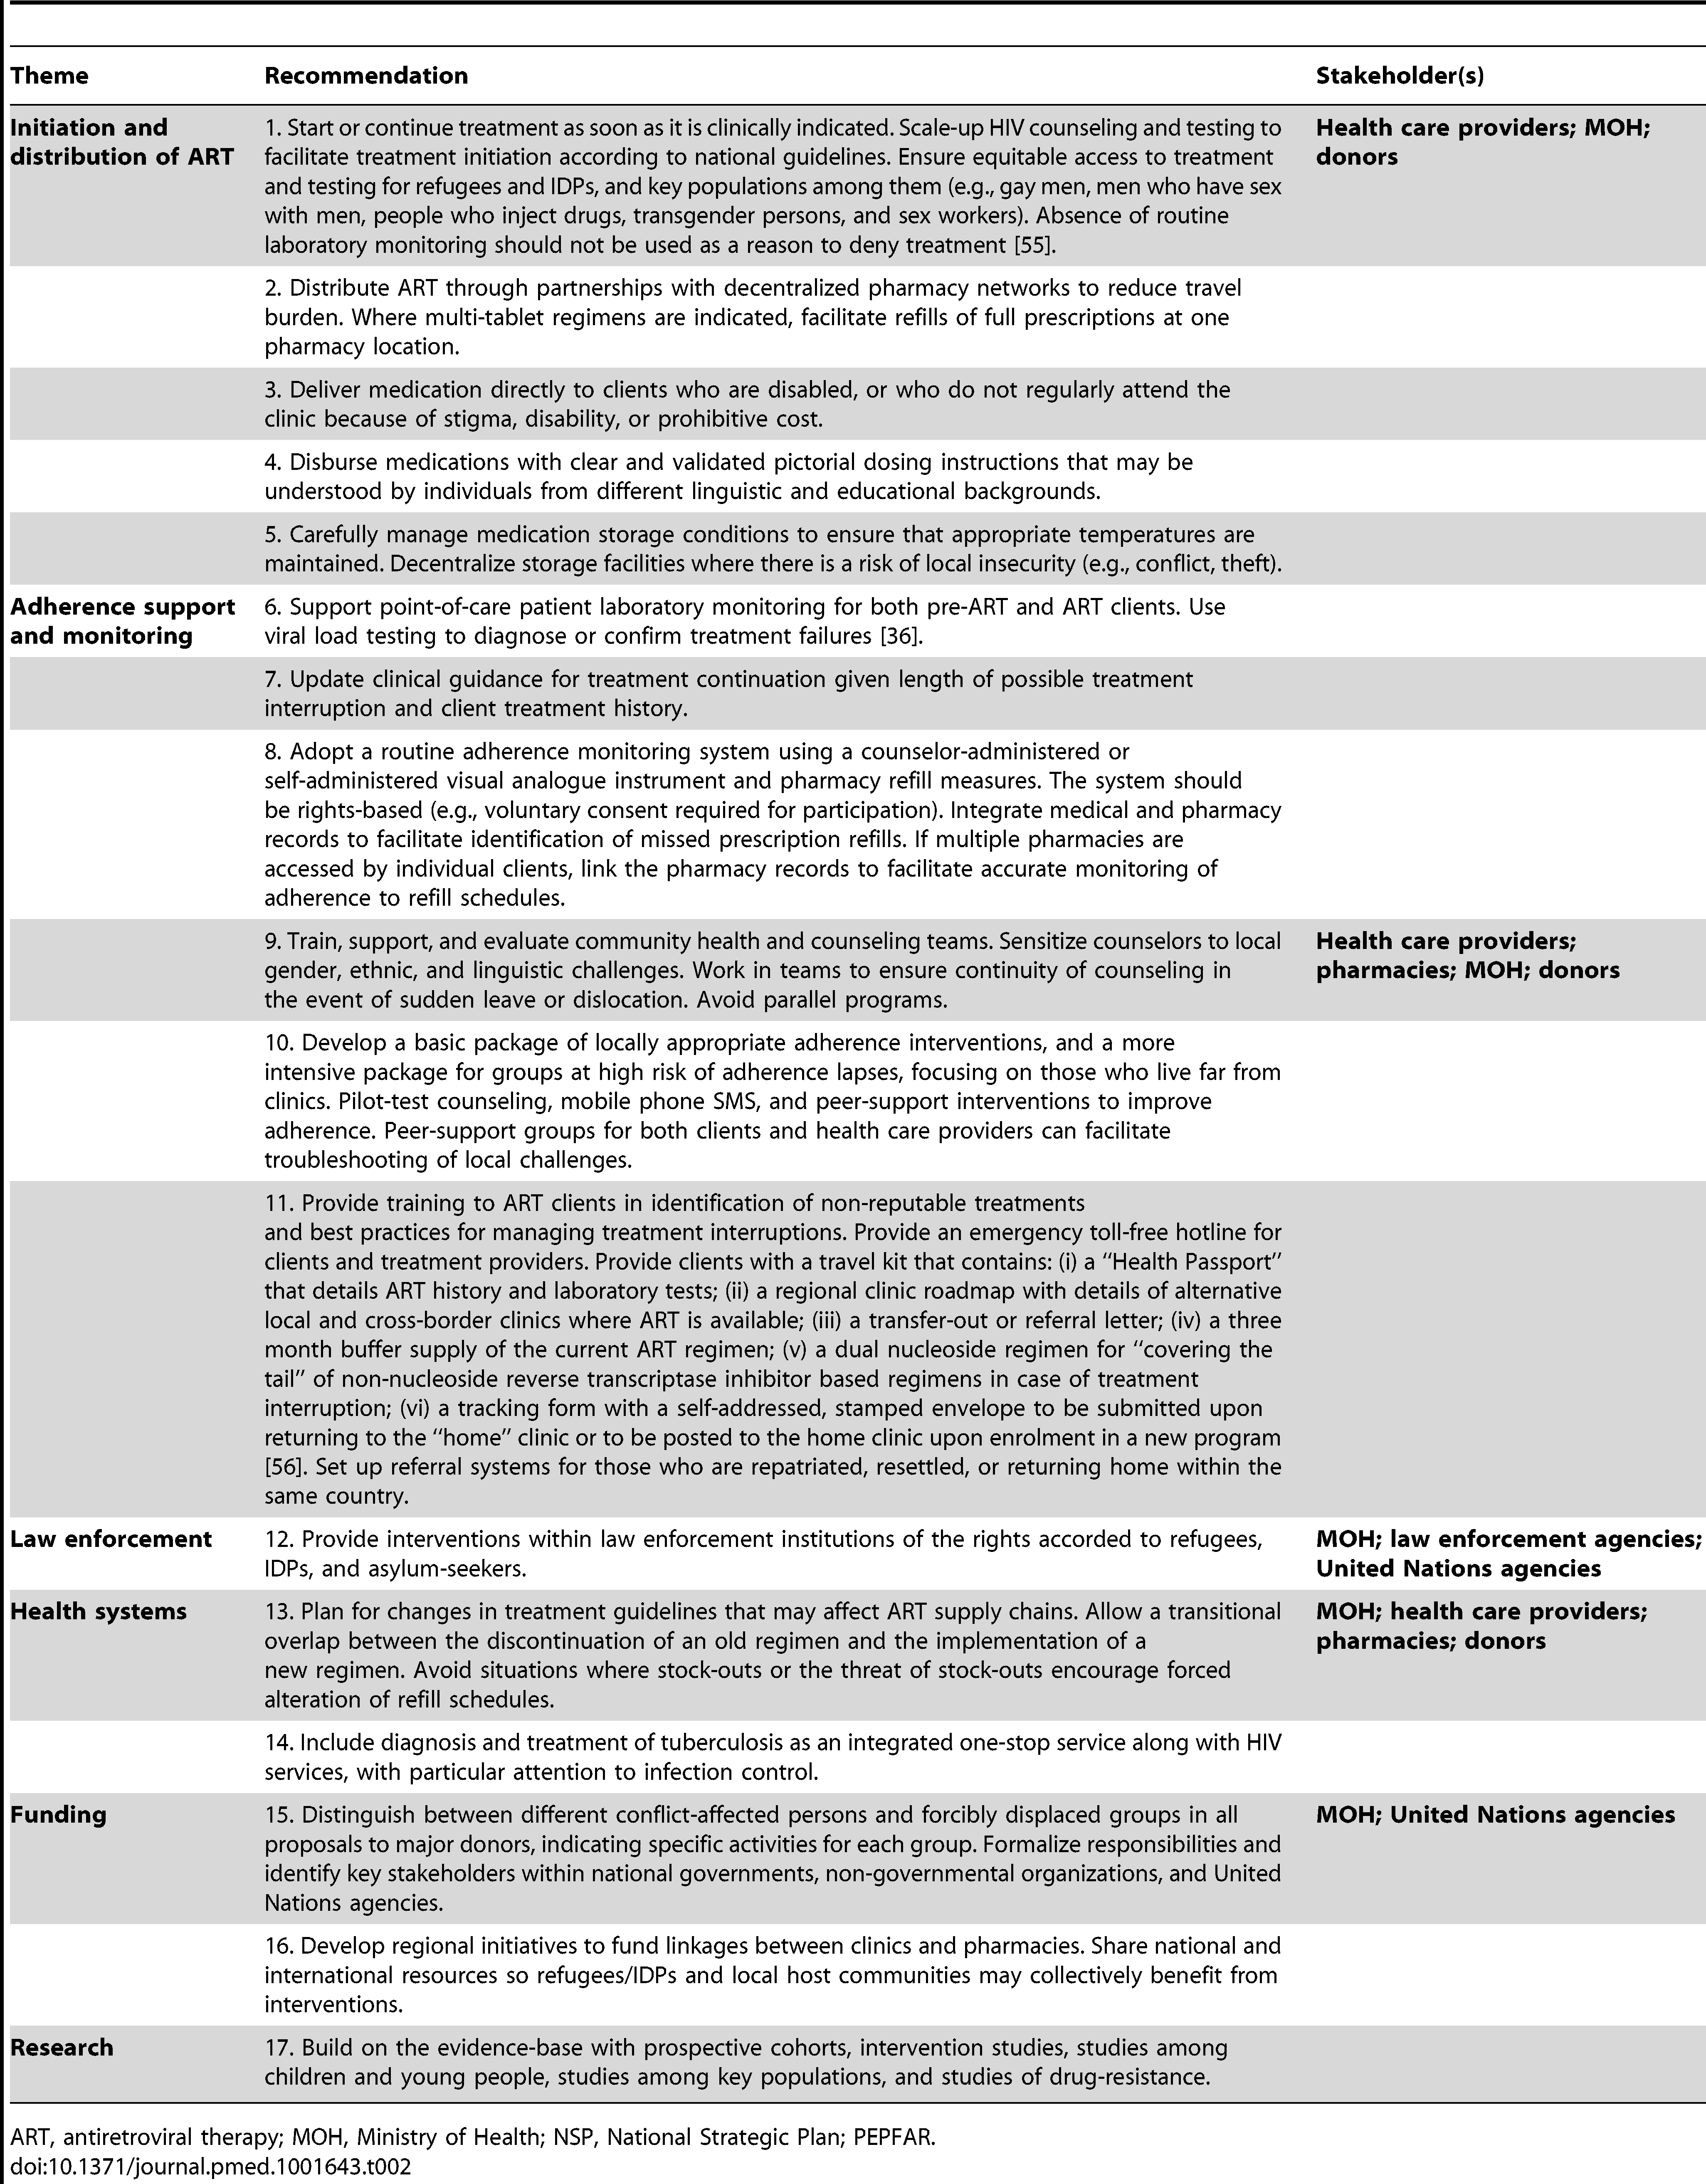 Recommendations for provision of antiretroviral therapy to refugees and IDPs in stable settings.